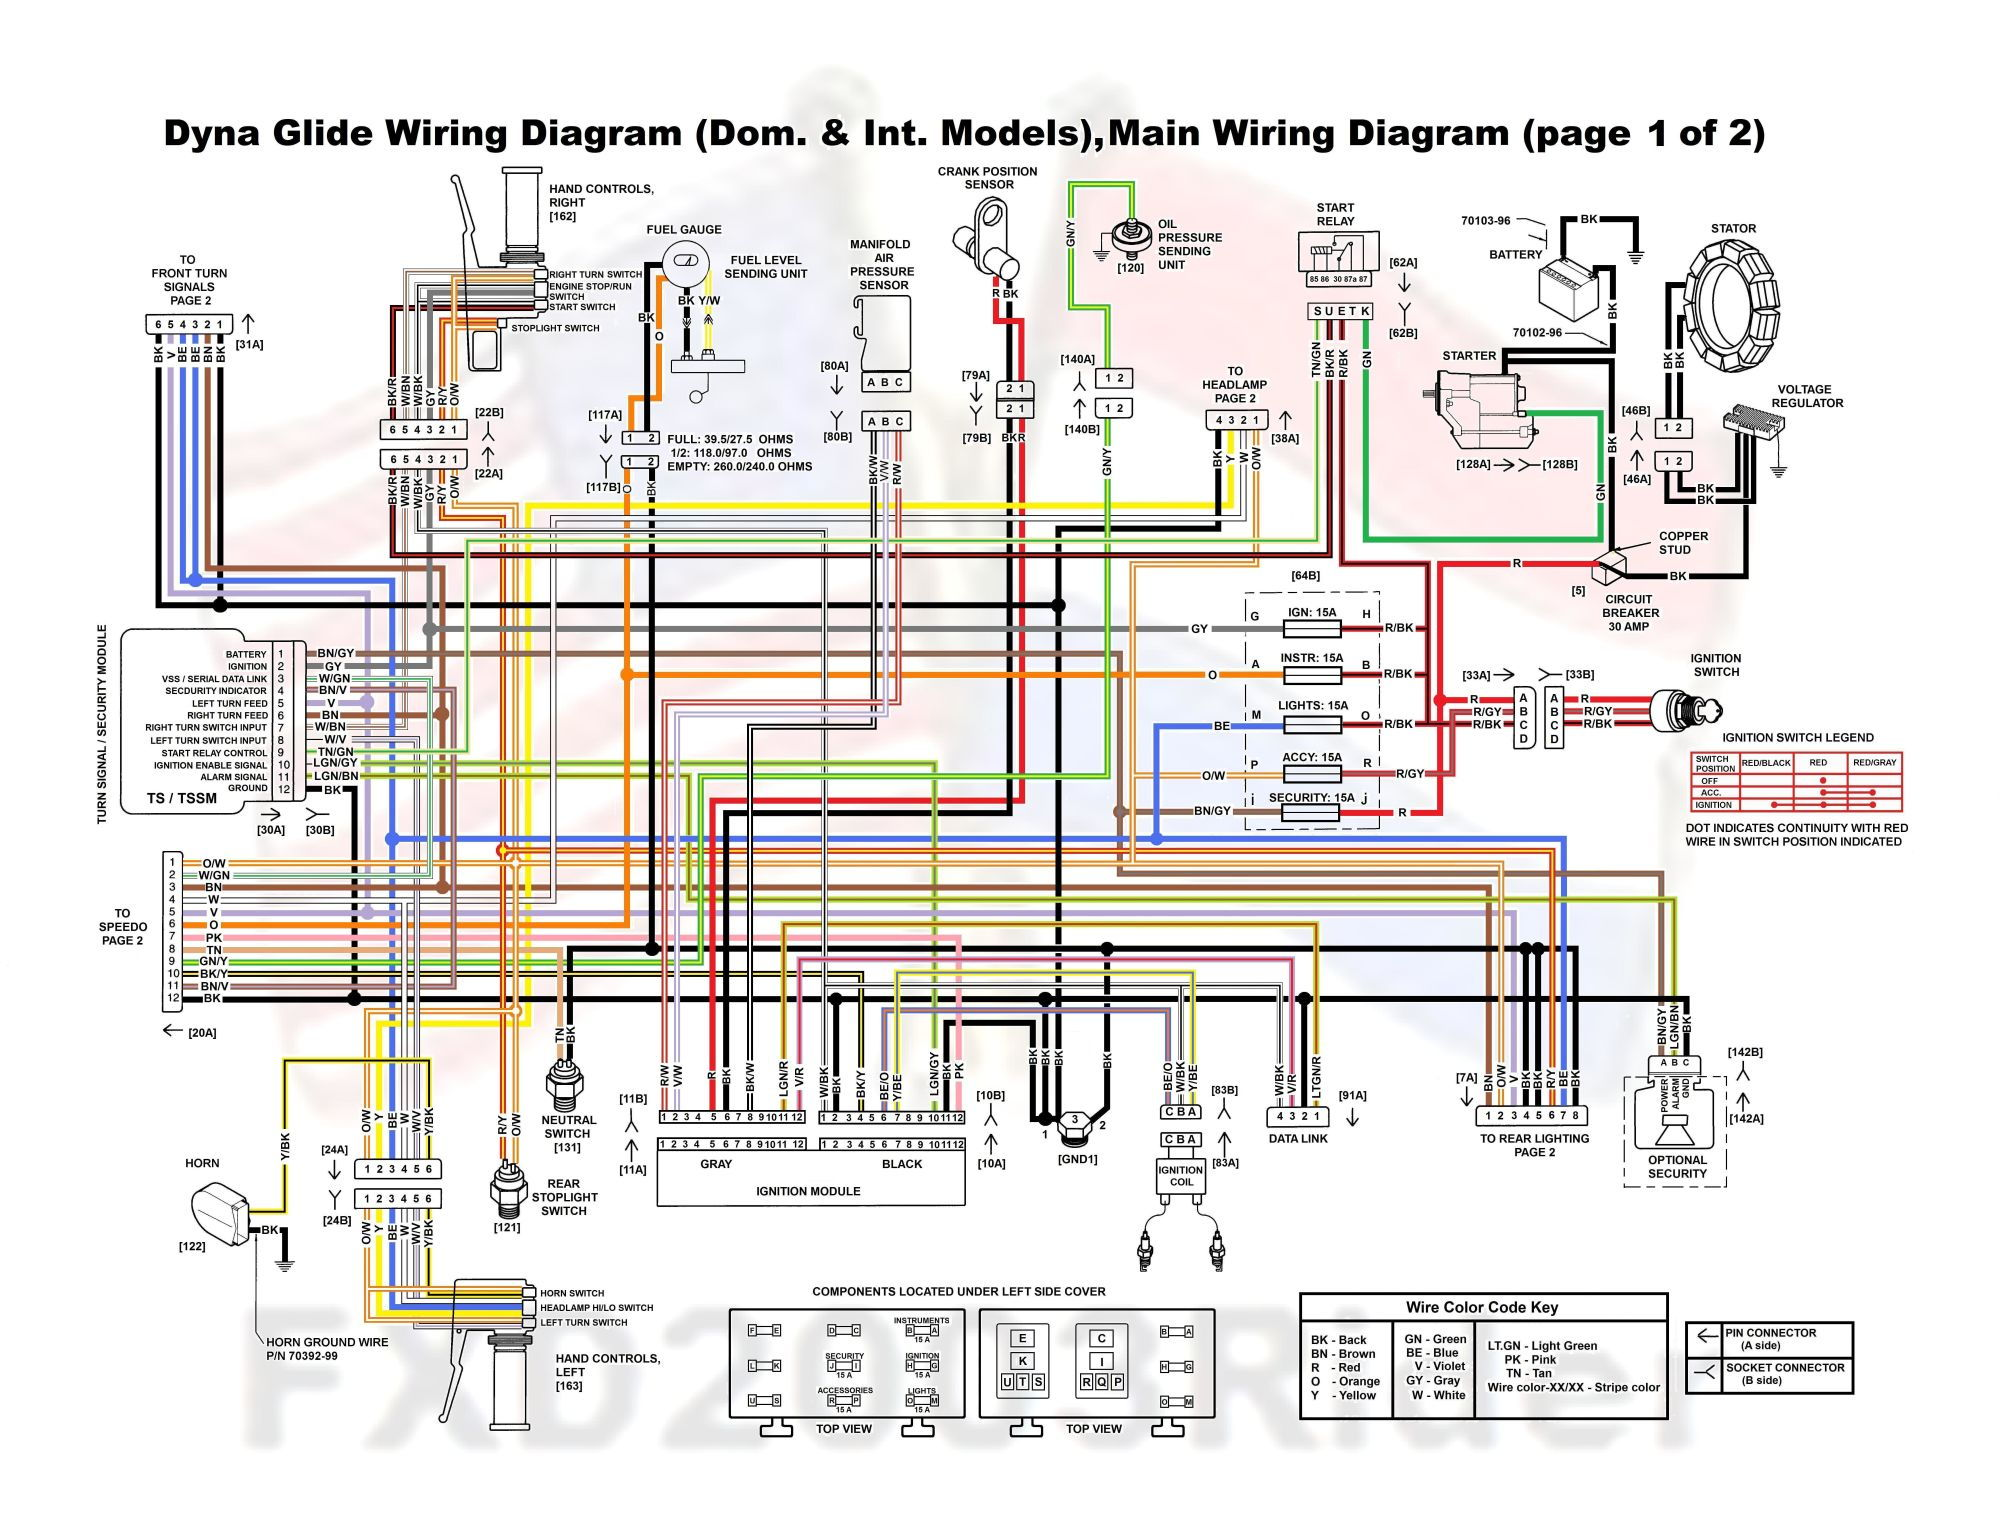 fxwg wiring diagram wiring diagram read FXWG Custom fxwg wiring diagram blog diagram schema wiring diagram fxwg fxwg wiring diagram